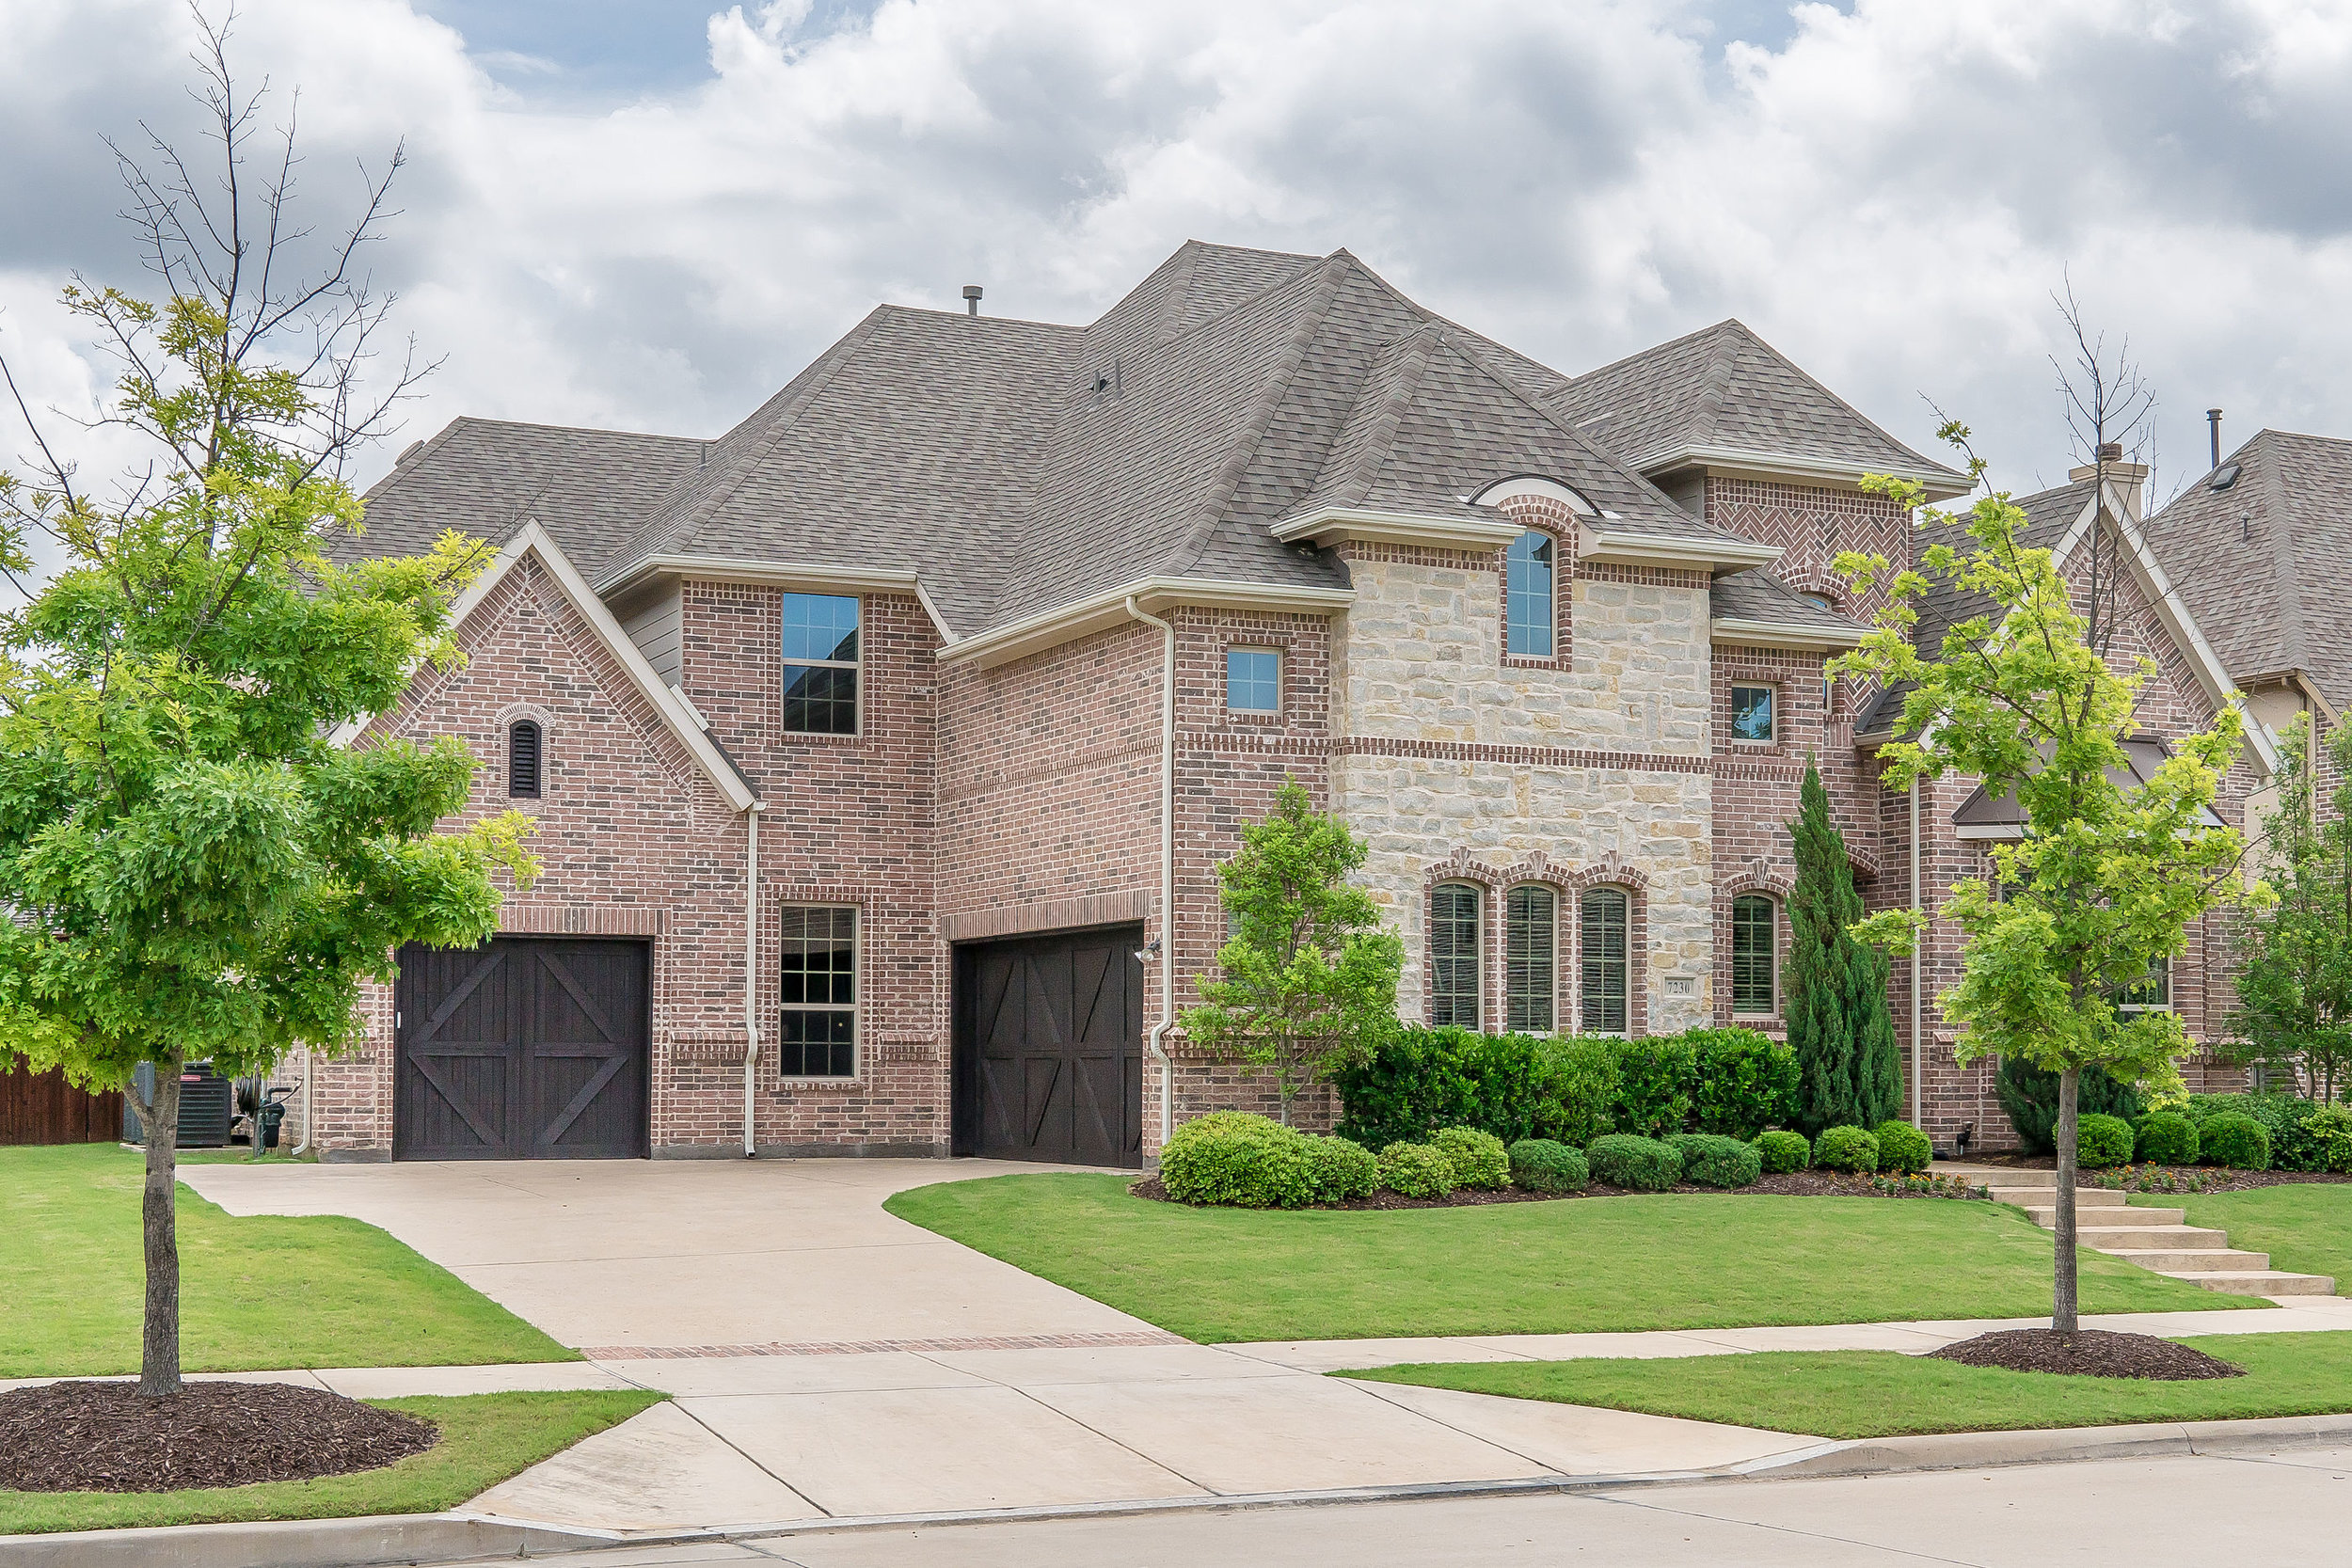 7230 Kentwood Drive Frisco Texas 75034 (2).jpg